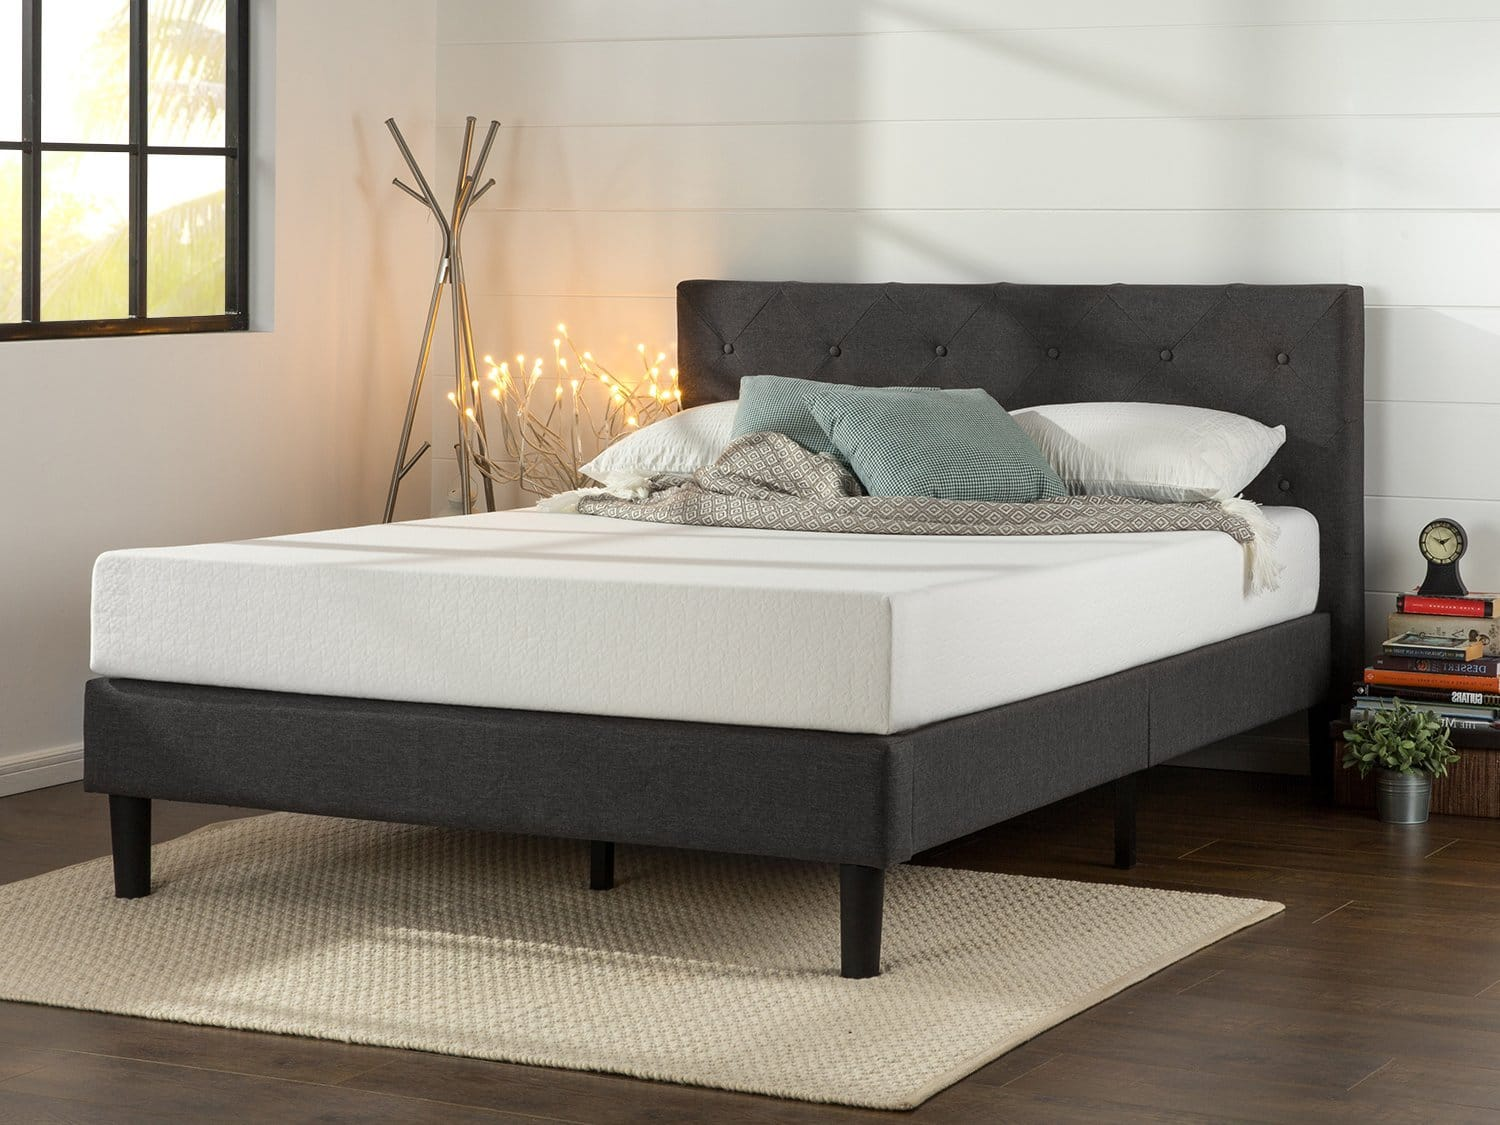 Luxury Zinus Upholstered Diamond Stitched Platform Bed Queen Slickdeals net